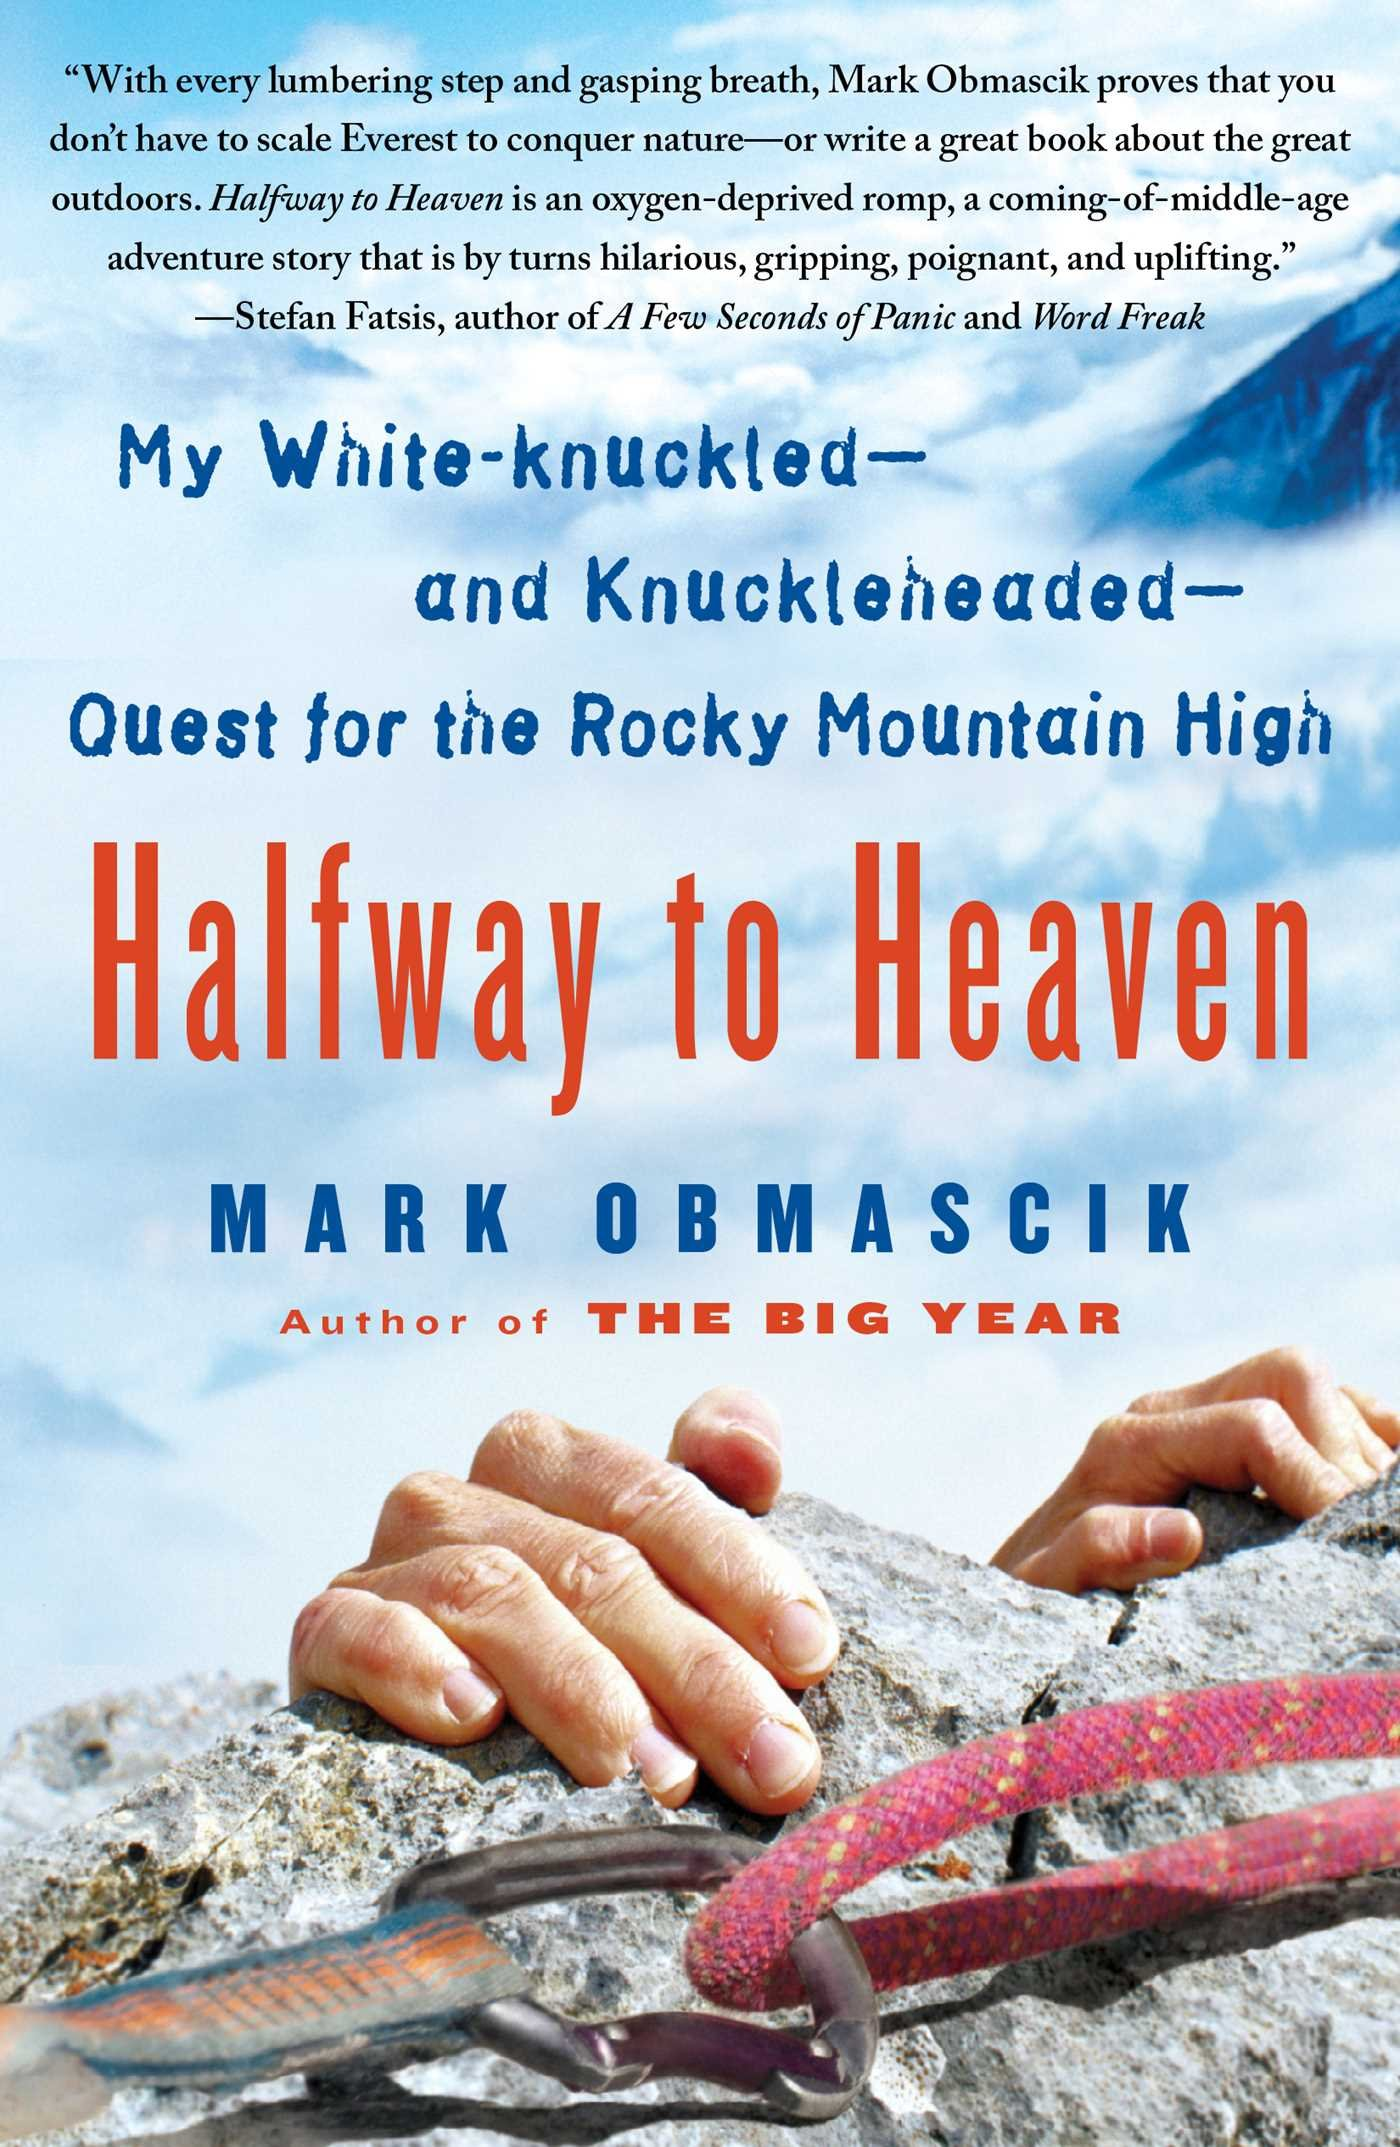 My White-knuckled--and Knuckleheaded--Quest for the Rocky Mountain High